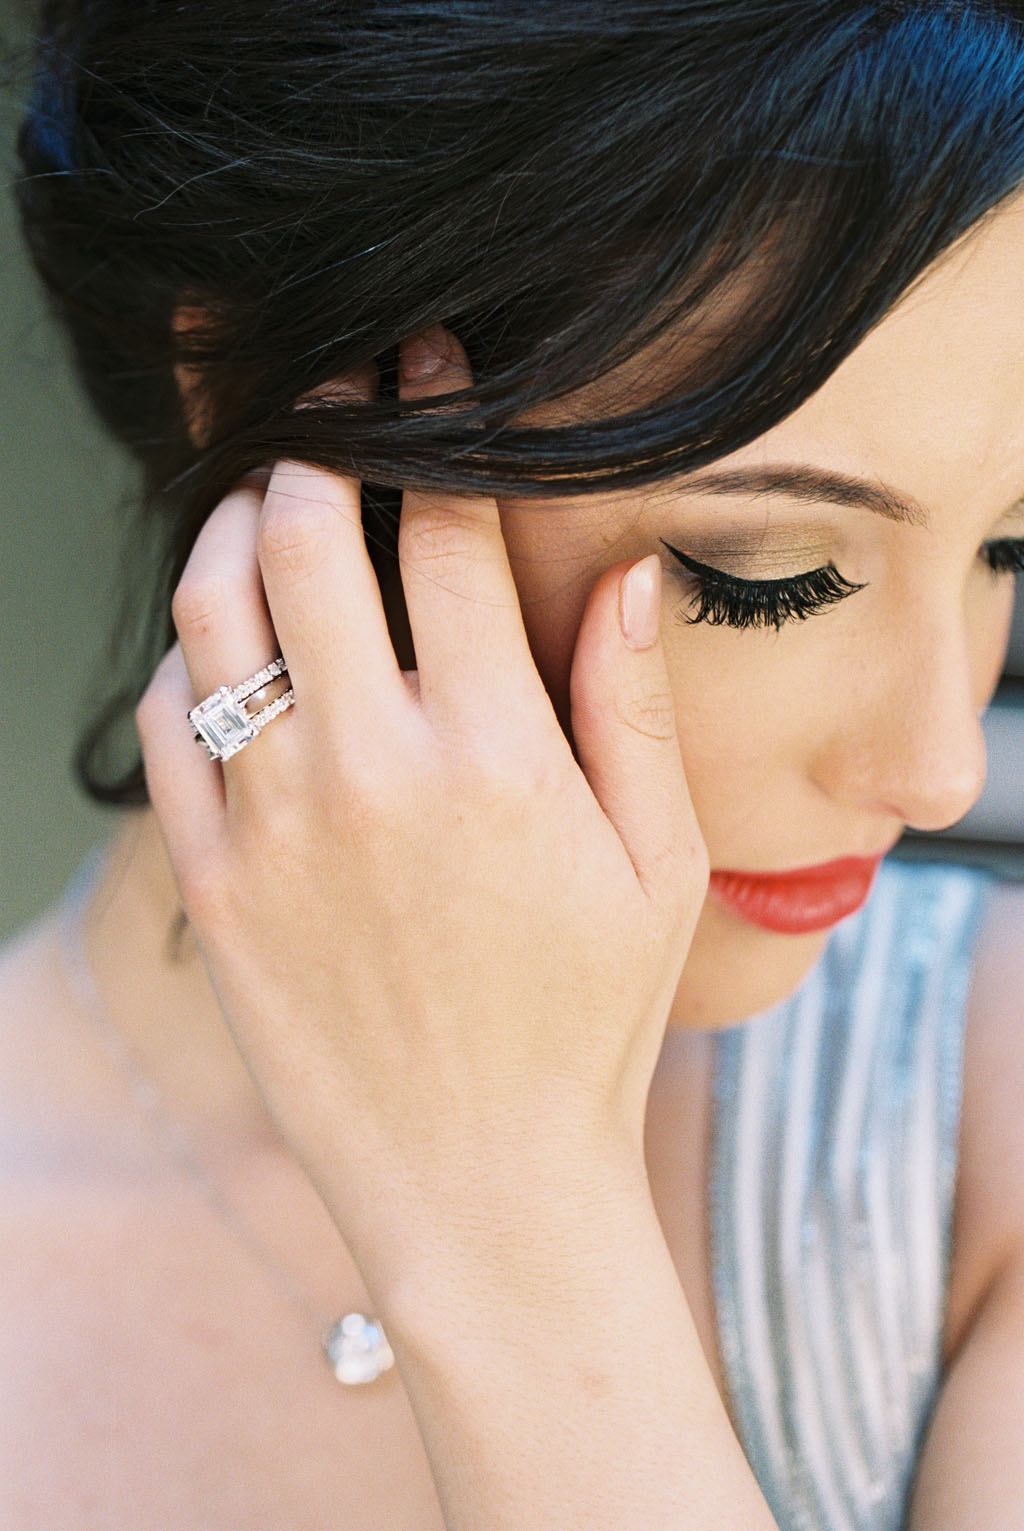 Woman With 4.0 Carat Ring